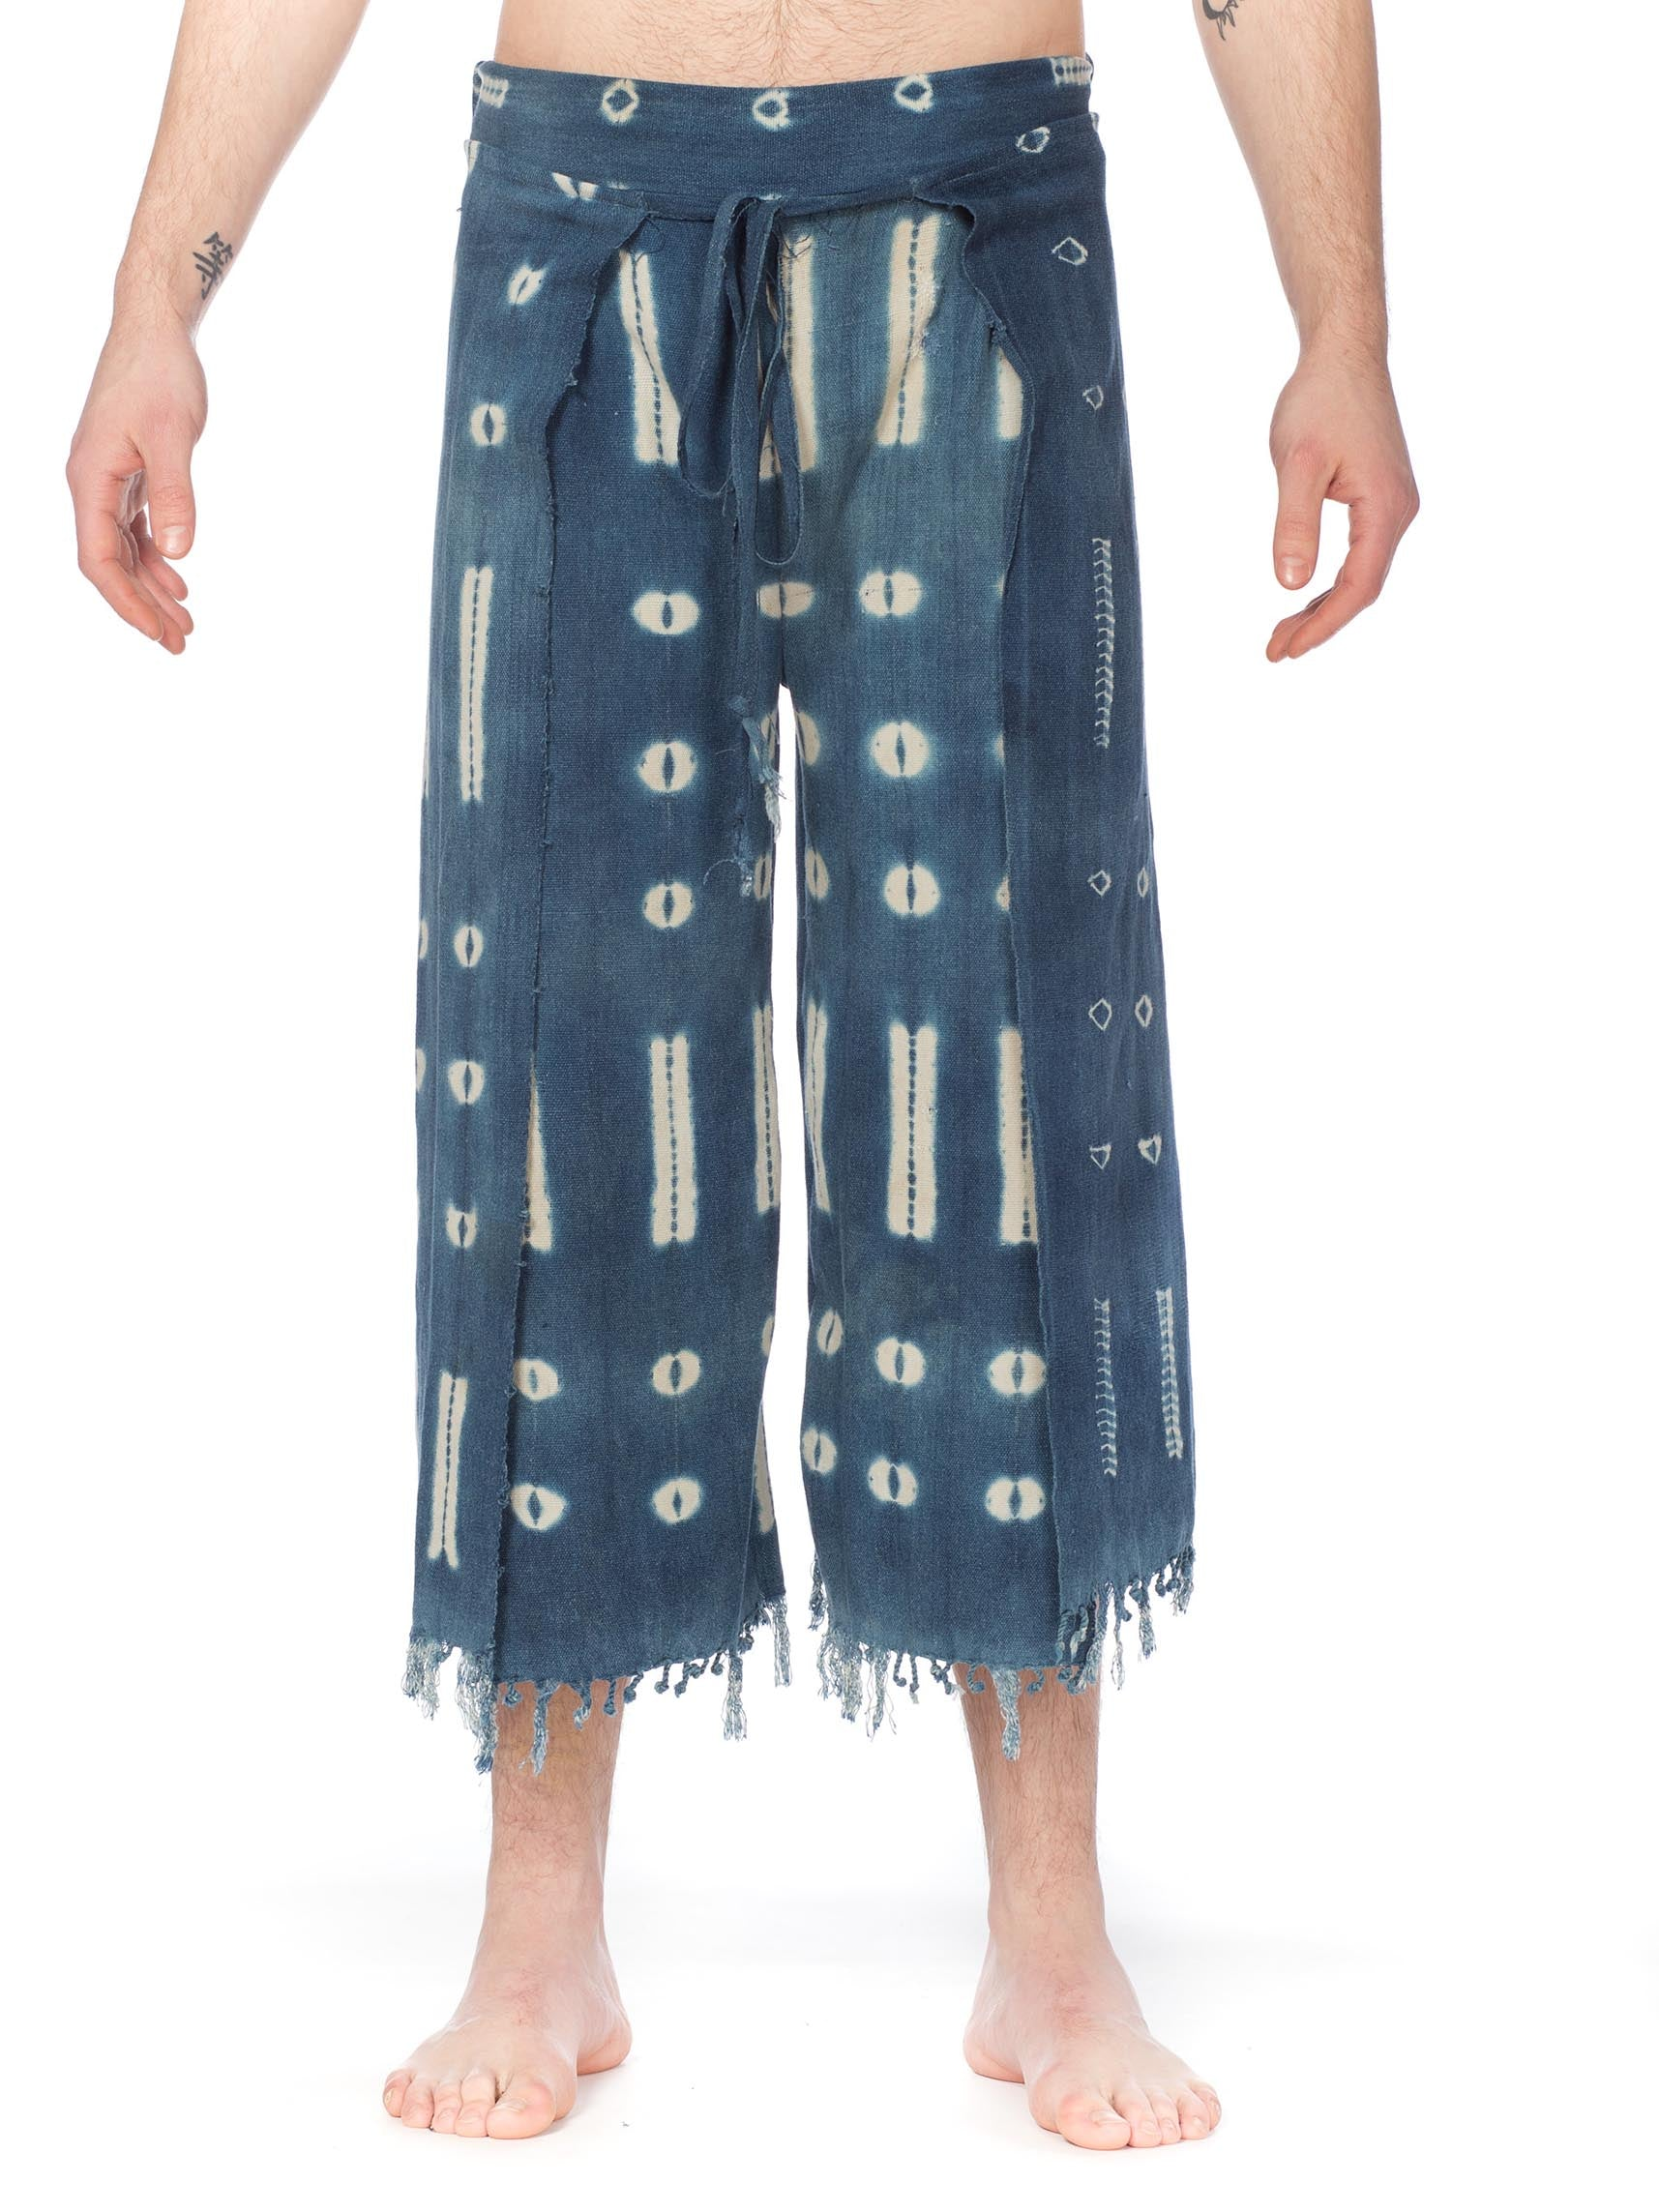 Handwoven Tie-dyed African Indigo Wrapped Pants